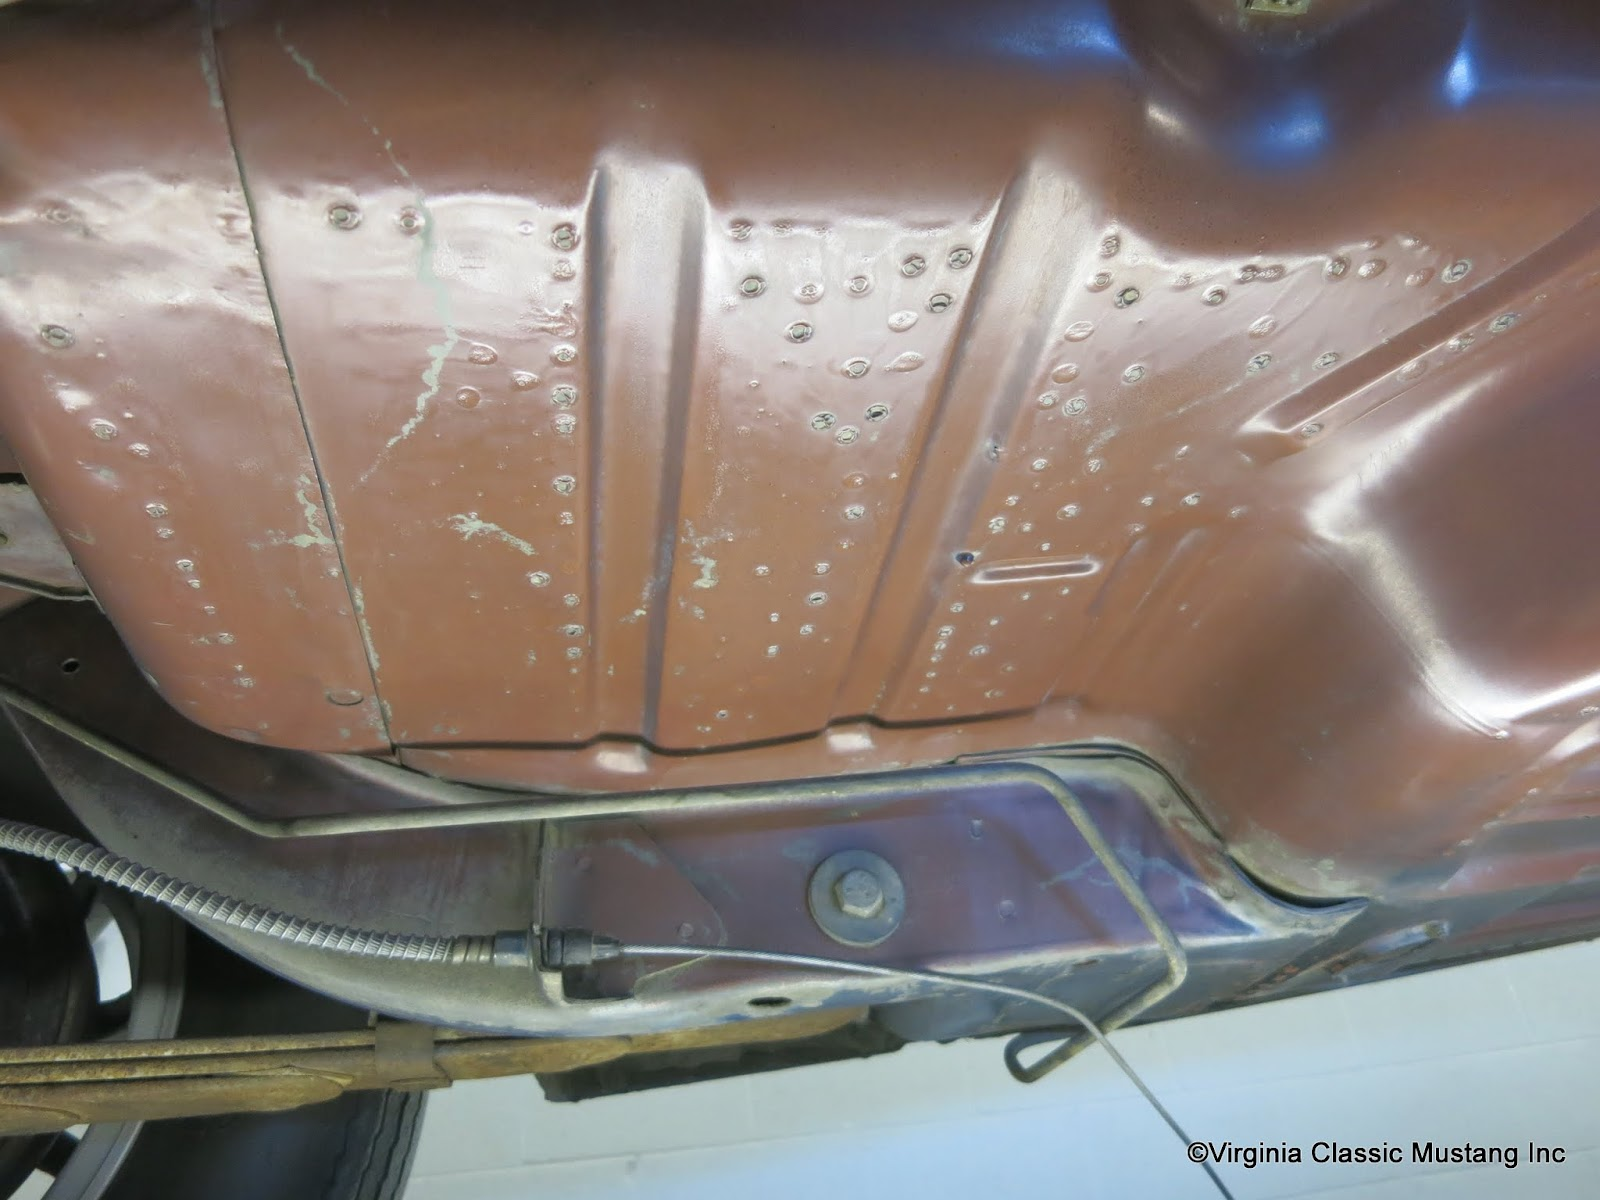 Virginia classic mustang blog april 2016 for 1967 mustang floor pan